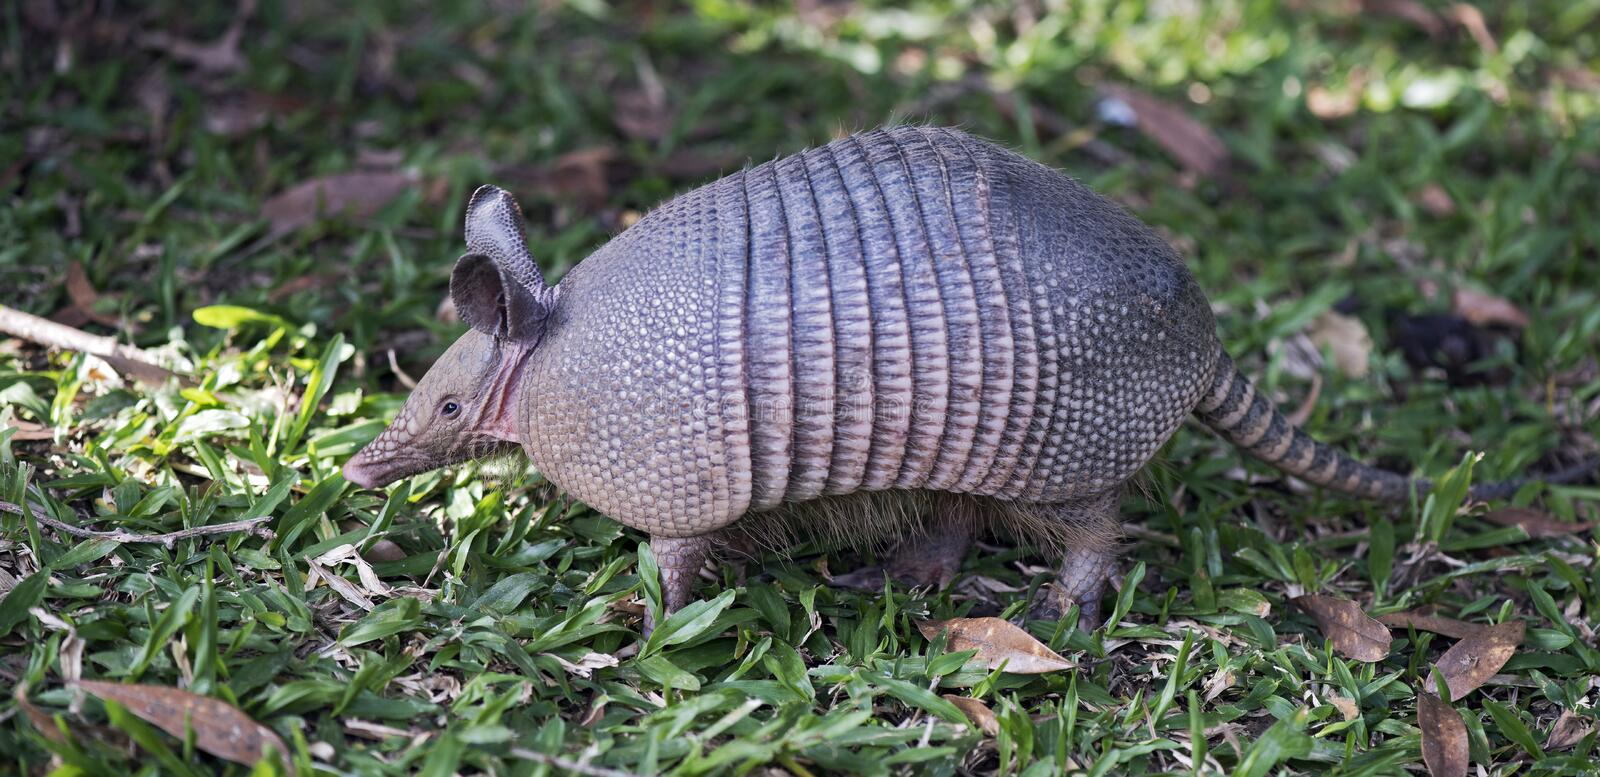 Armadillo searching for food in the field. SAO PAULO, SP, BRAZIL - JUNE 25, 2016 - Nine-banded armadillo, the most common of the armadillos, American mammal of stock photography